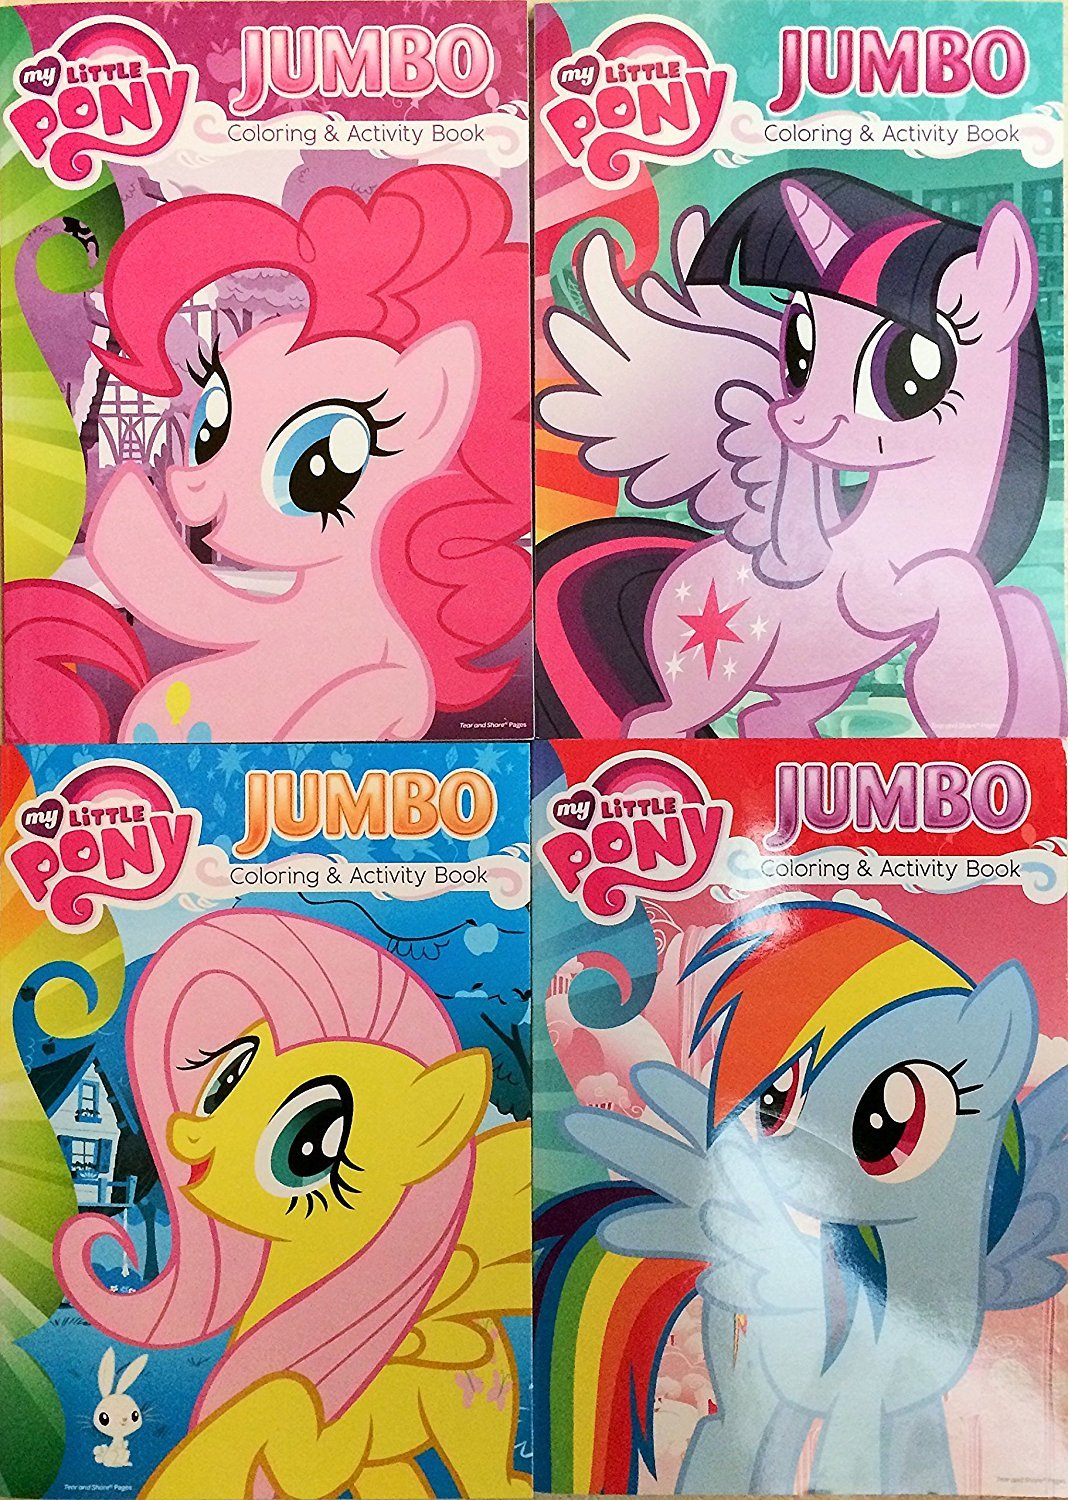 My Little Pony Jumbo Coloring & Activity Book 4 Pack